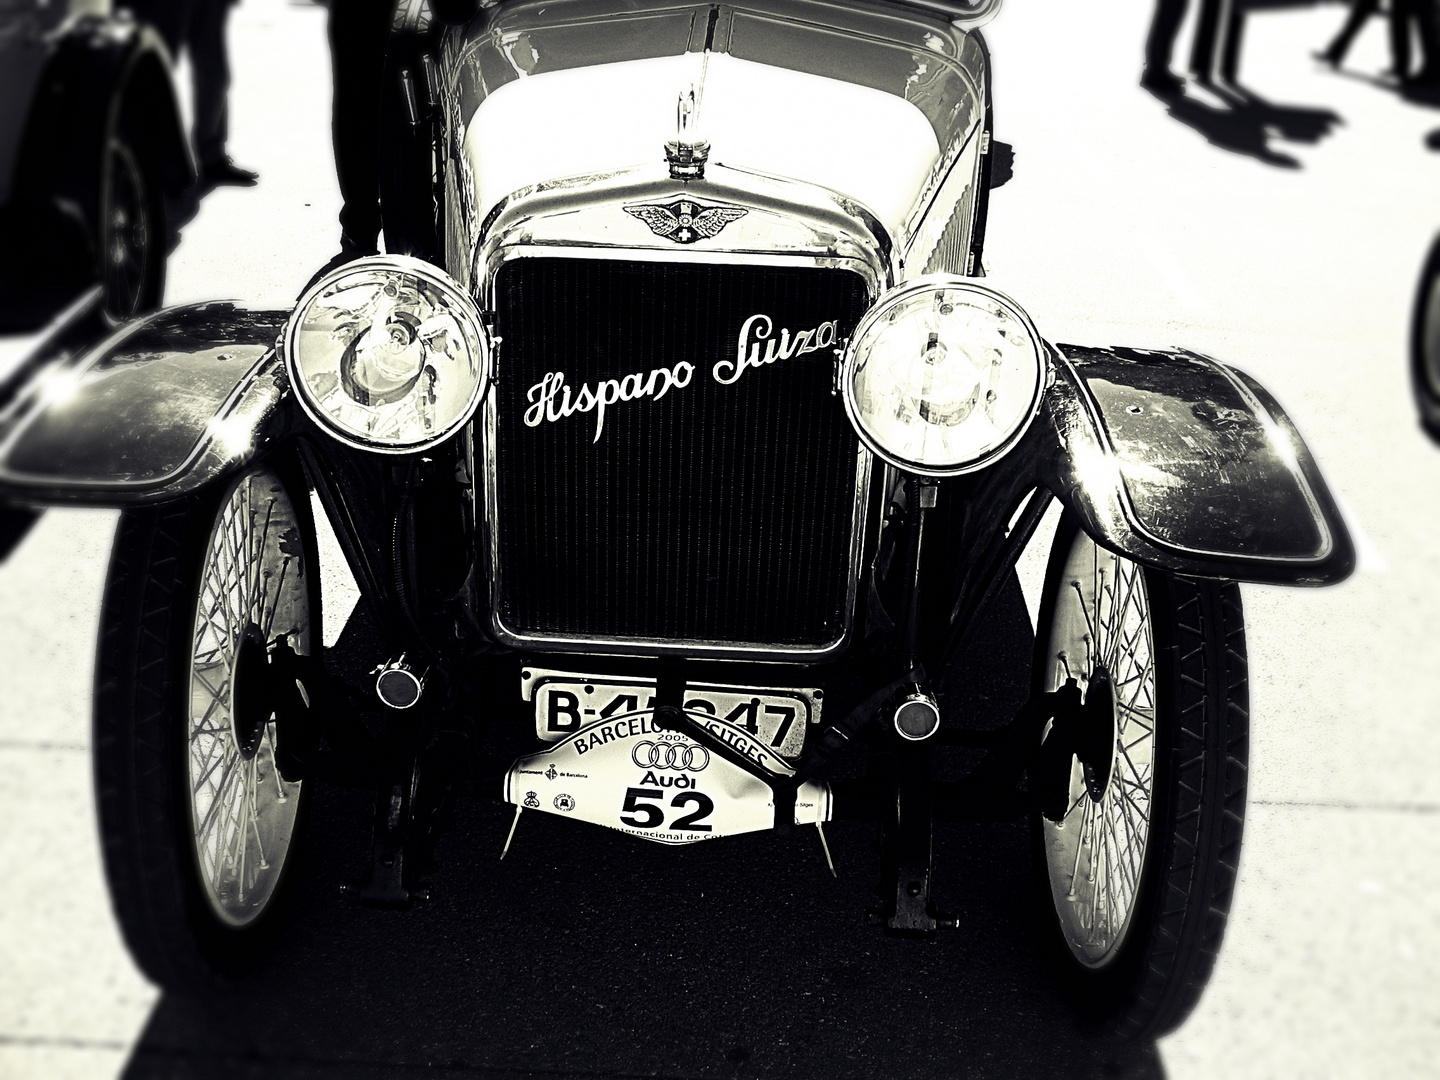 Brillante Hispano Suiza